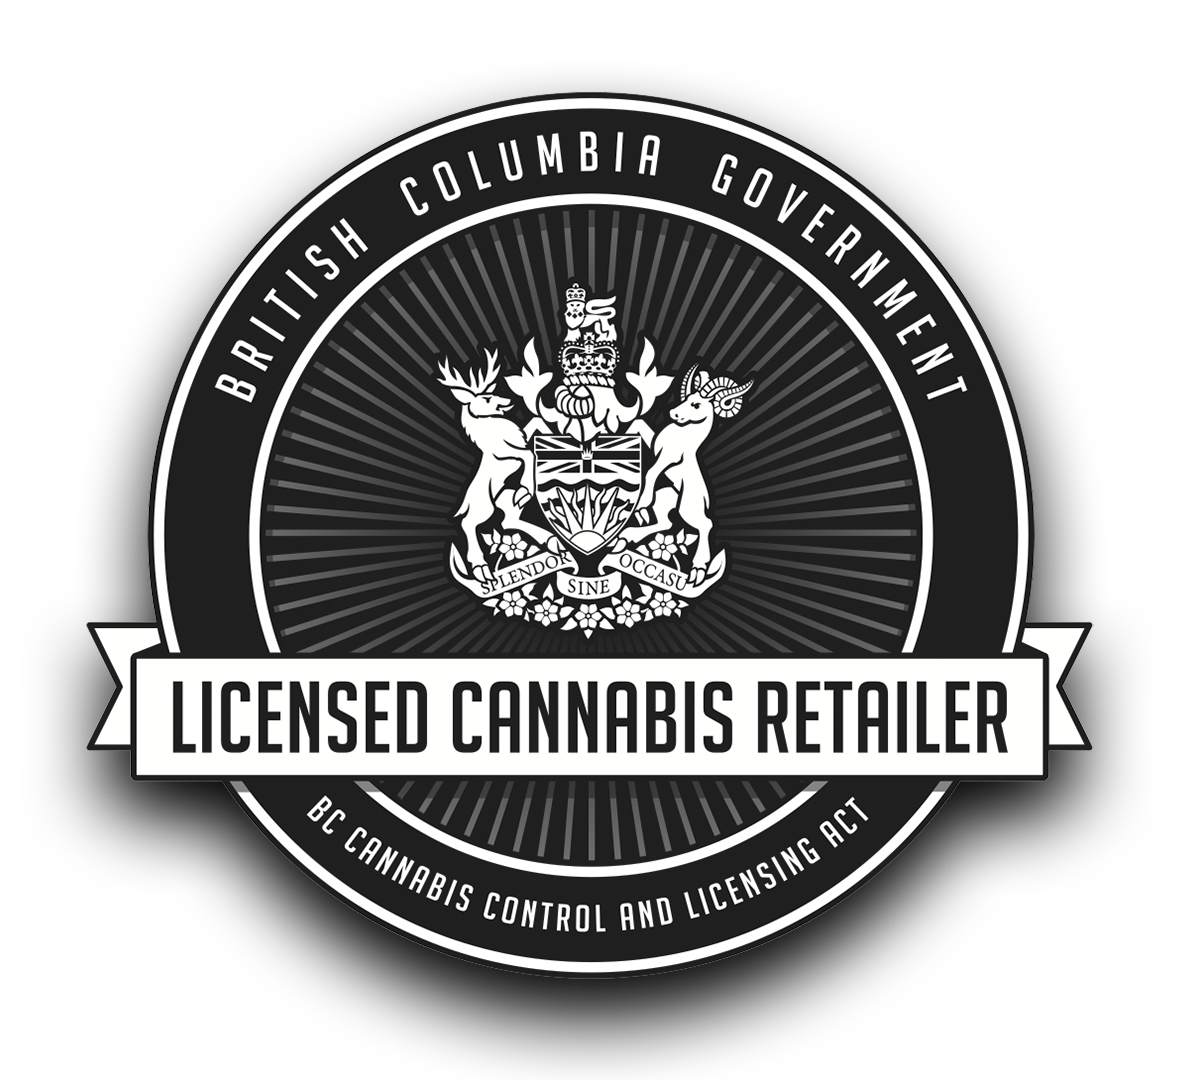 Licensed Cannabis Retailer